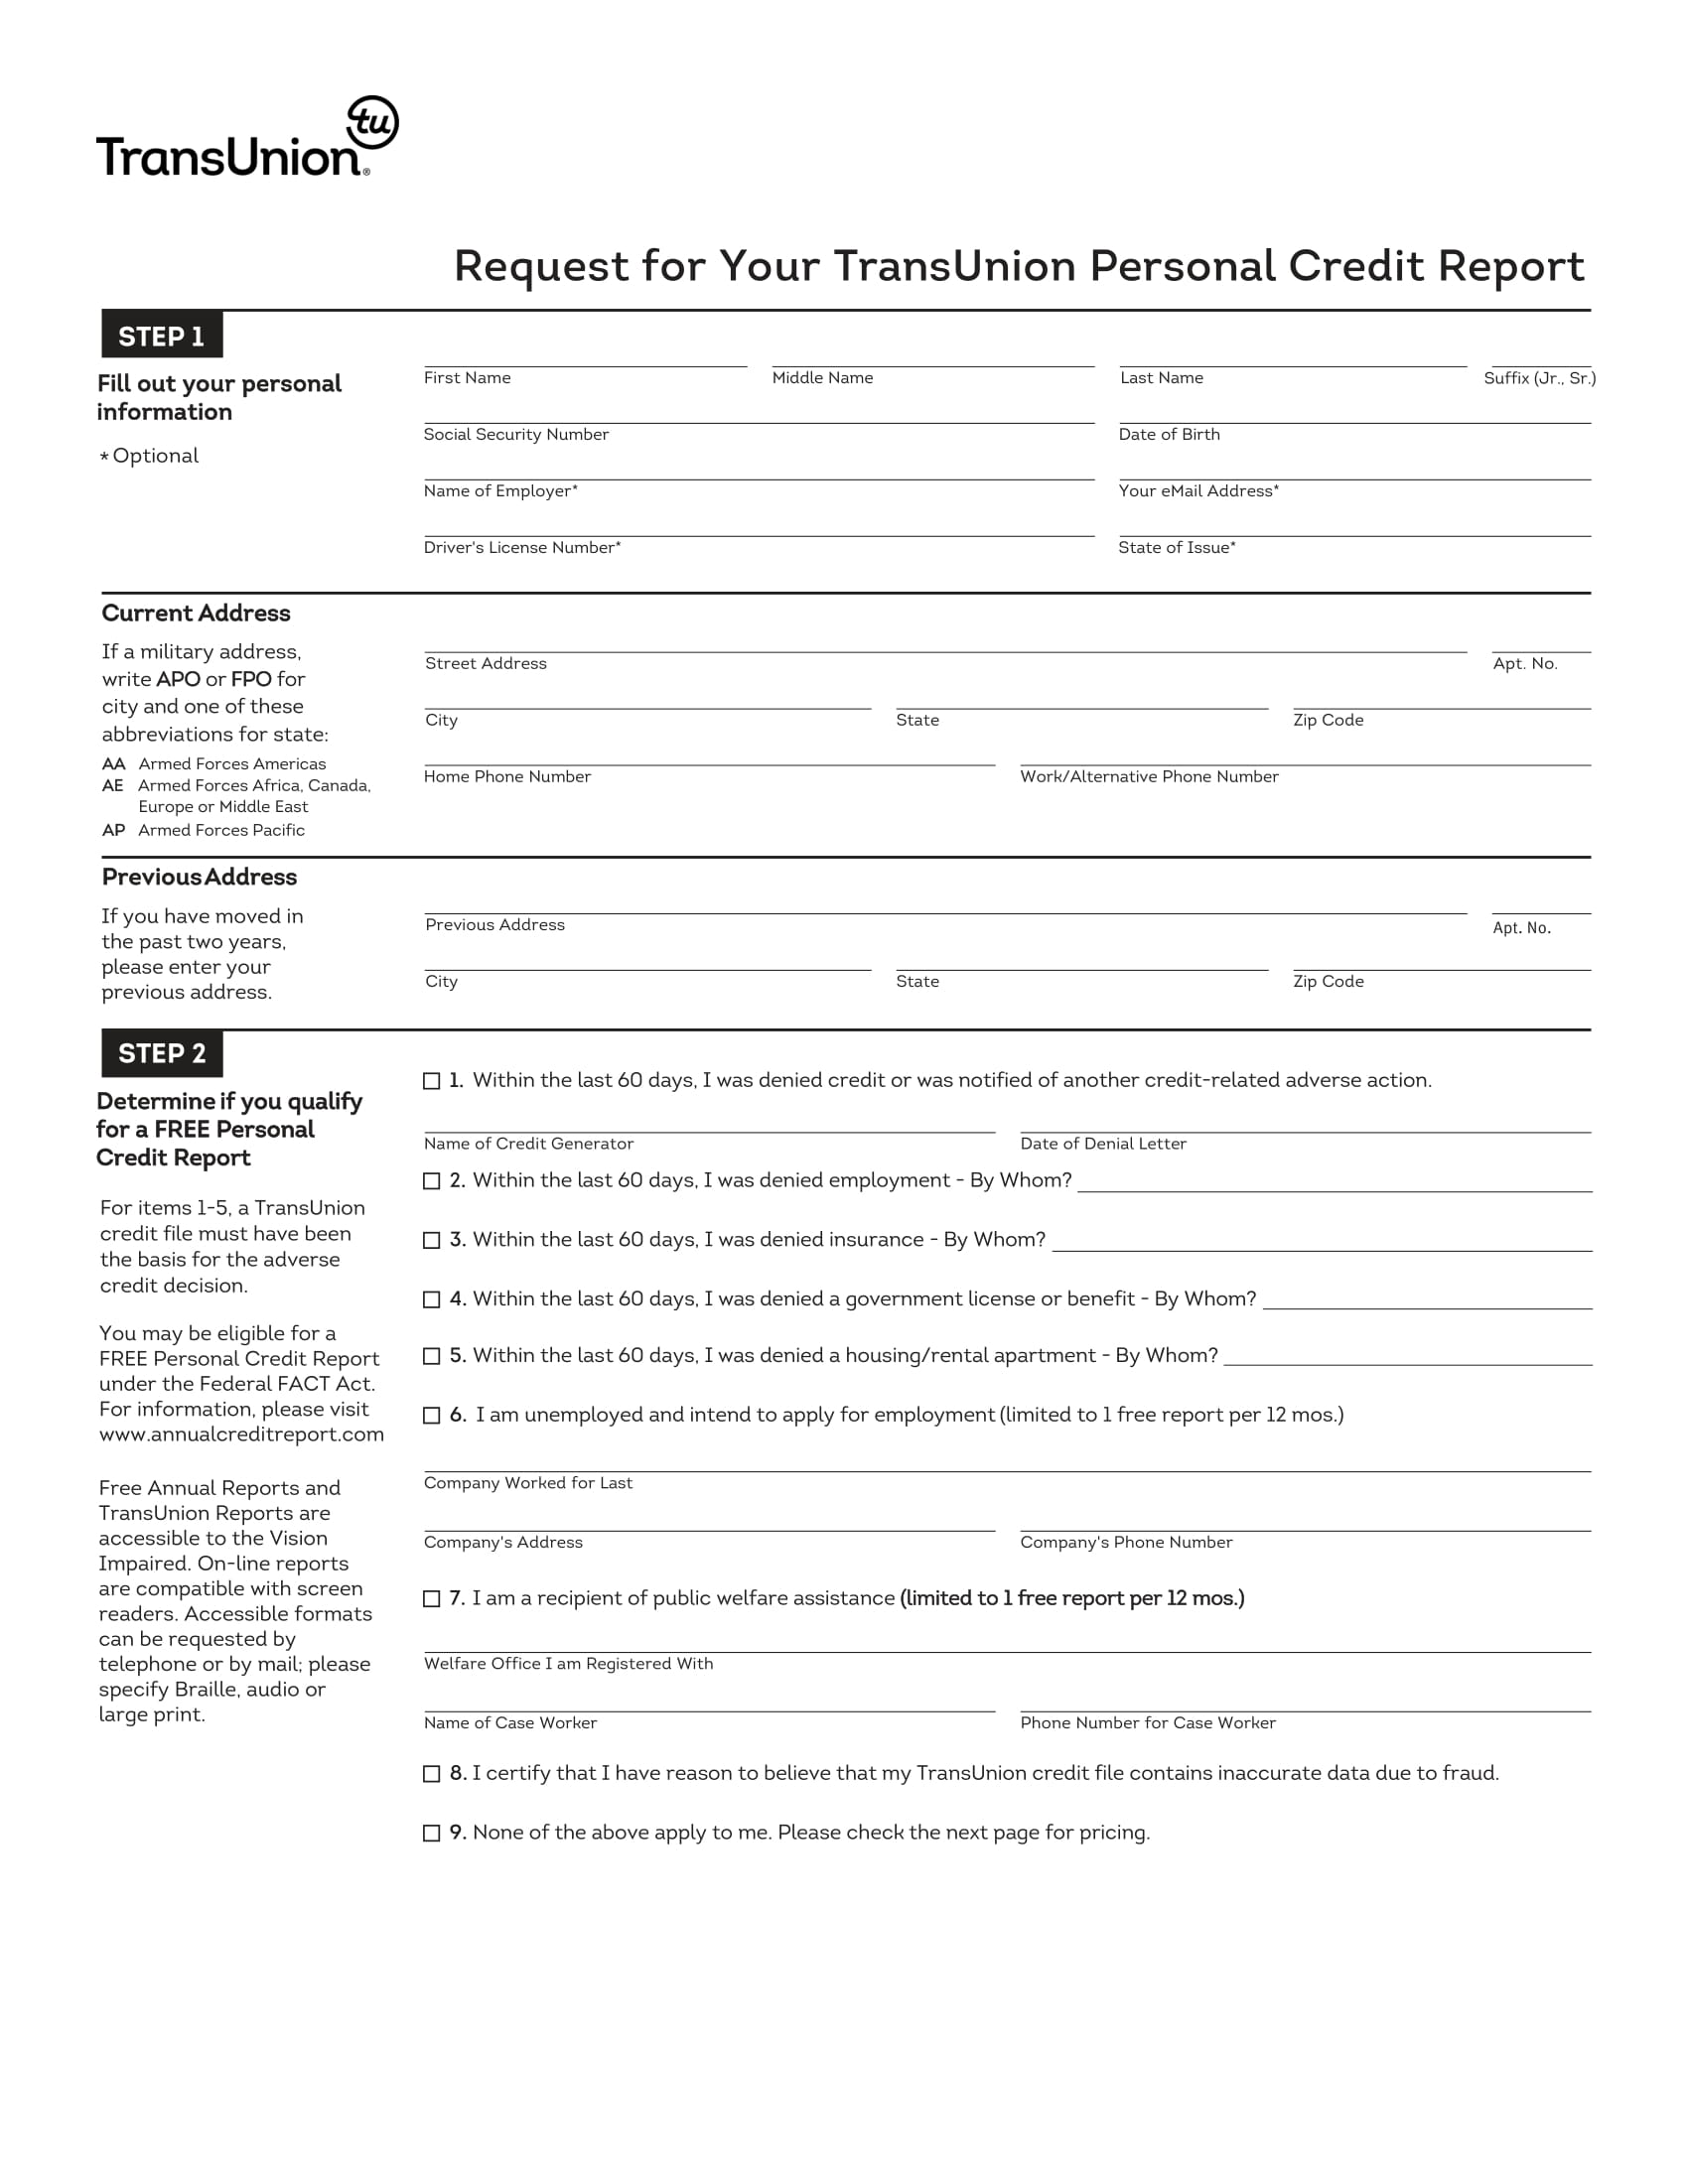 personal credit report request form 1